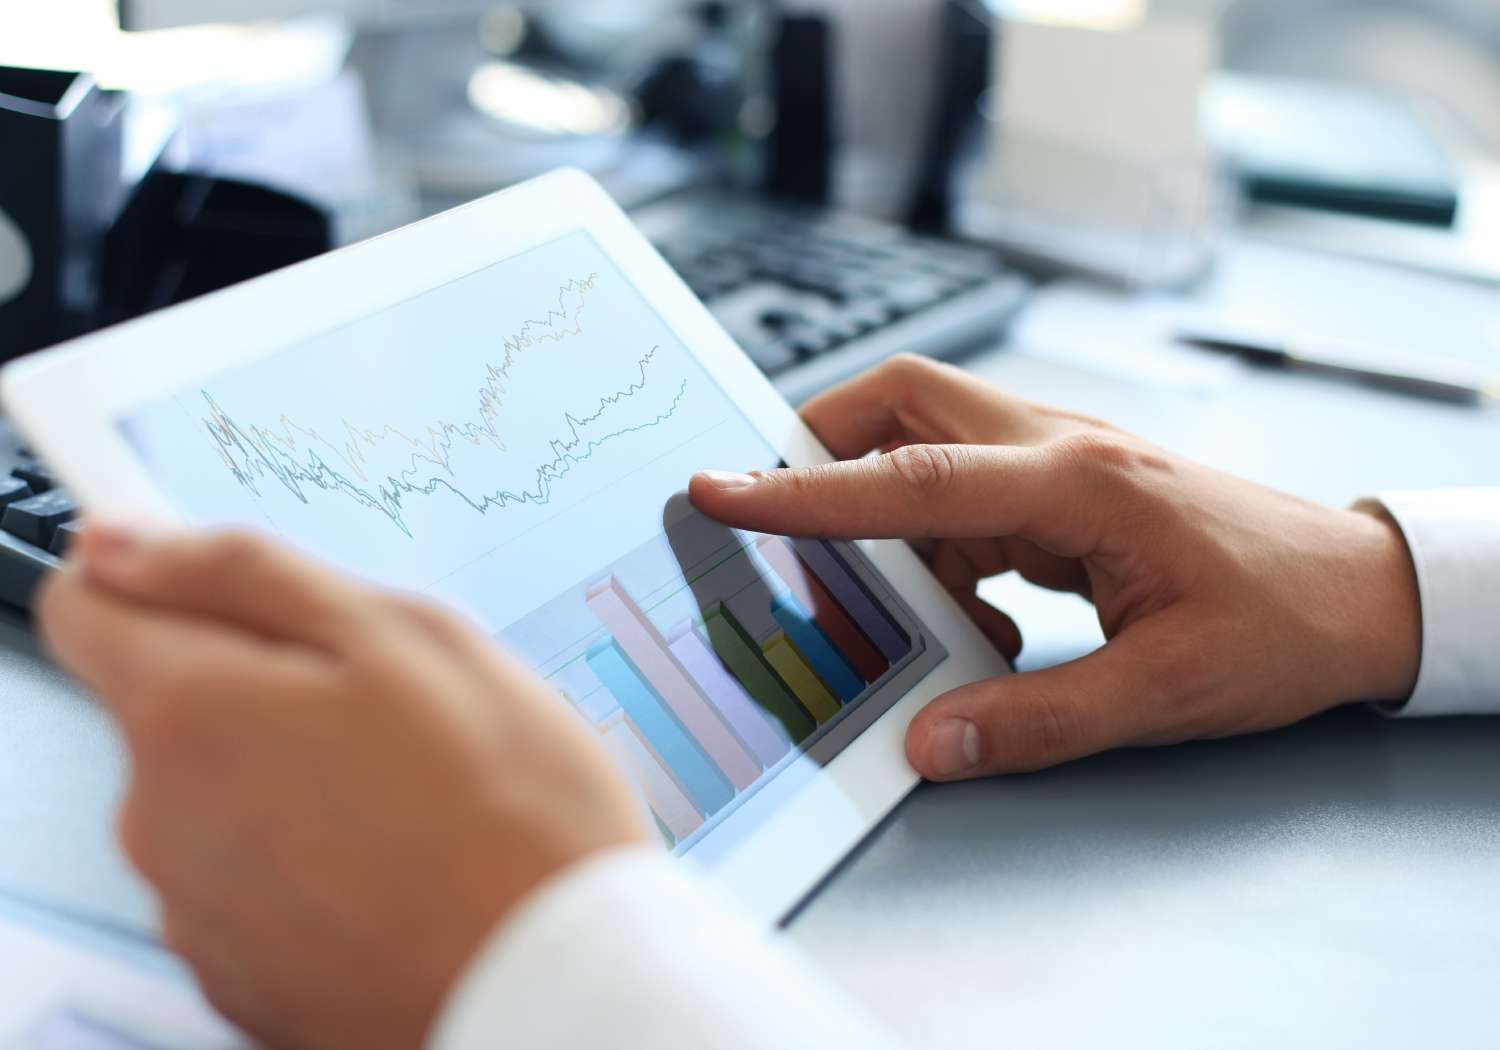 Analyst considering results of being a data-driven business